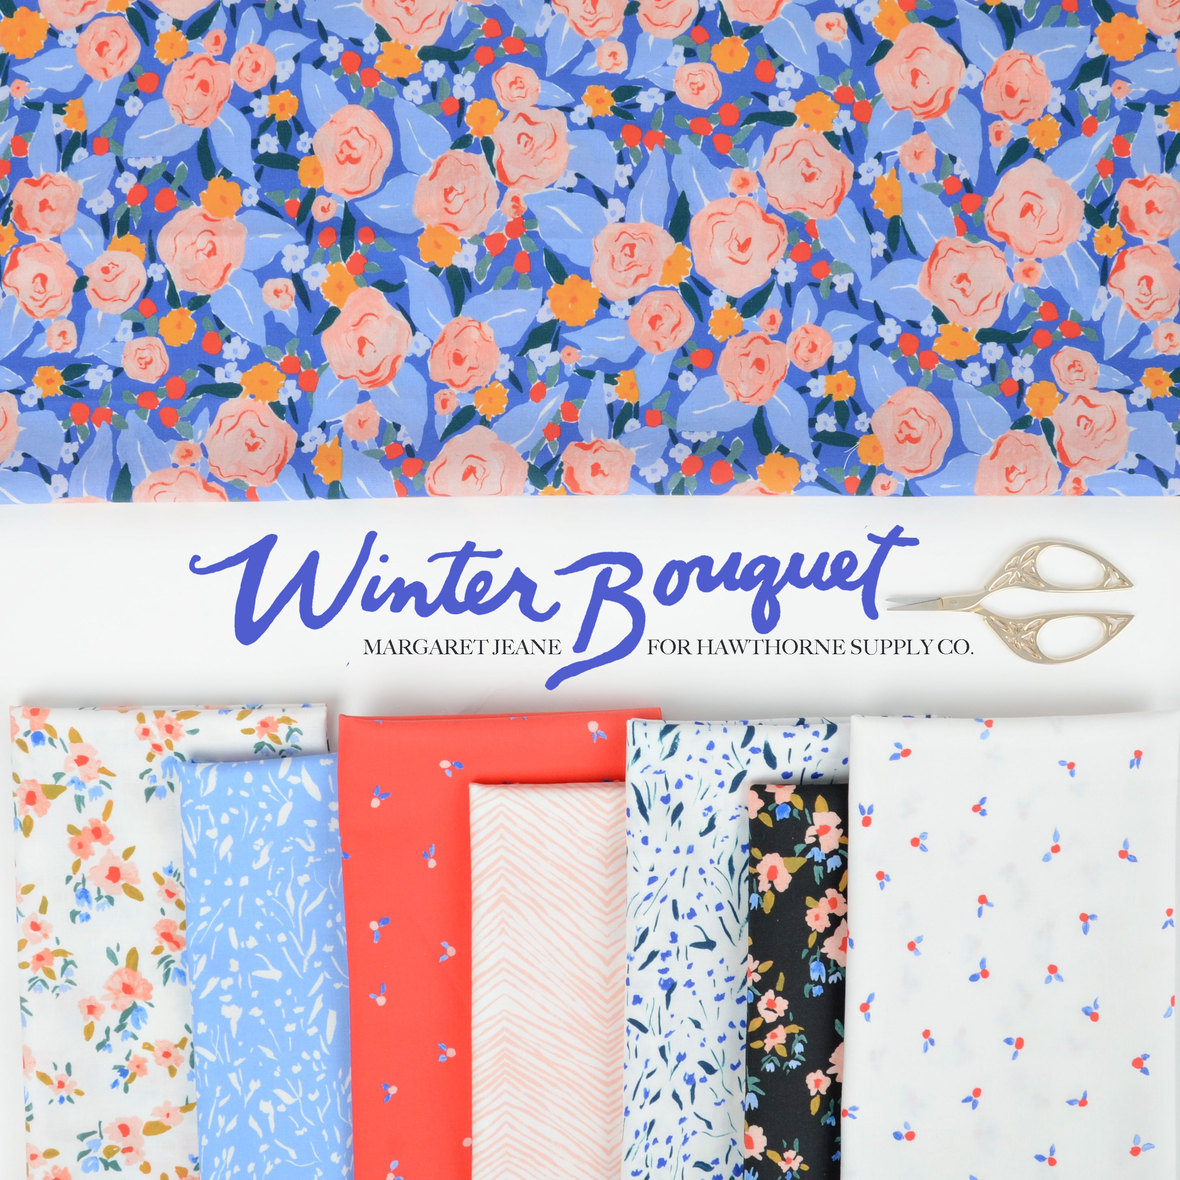 Winter-Bouquet-Fabric-poster-Margaret-Jeane-at-hawthorne-Supply-Co